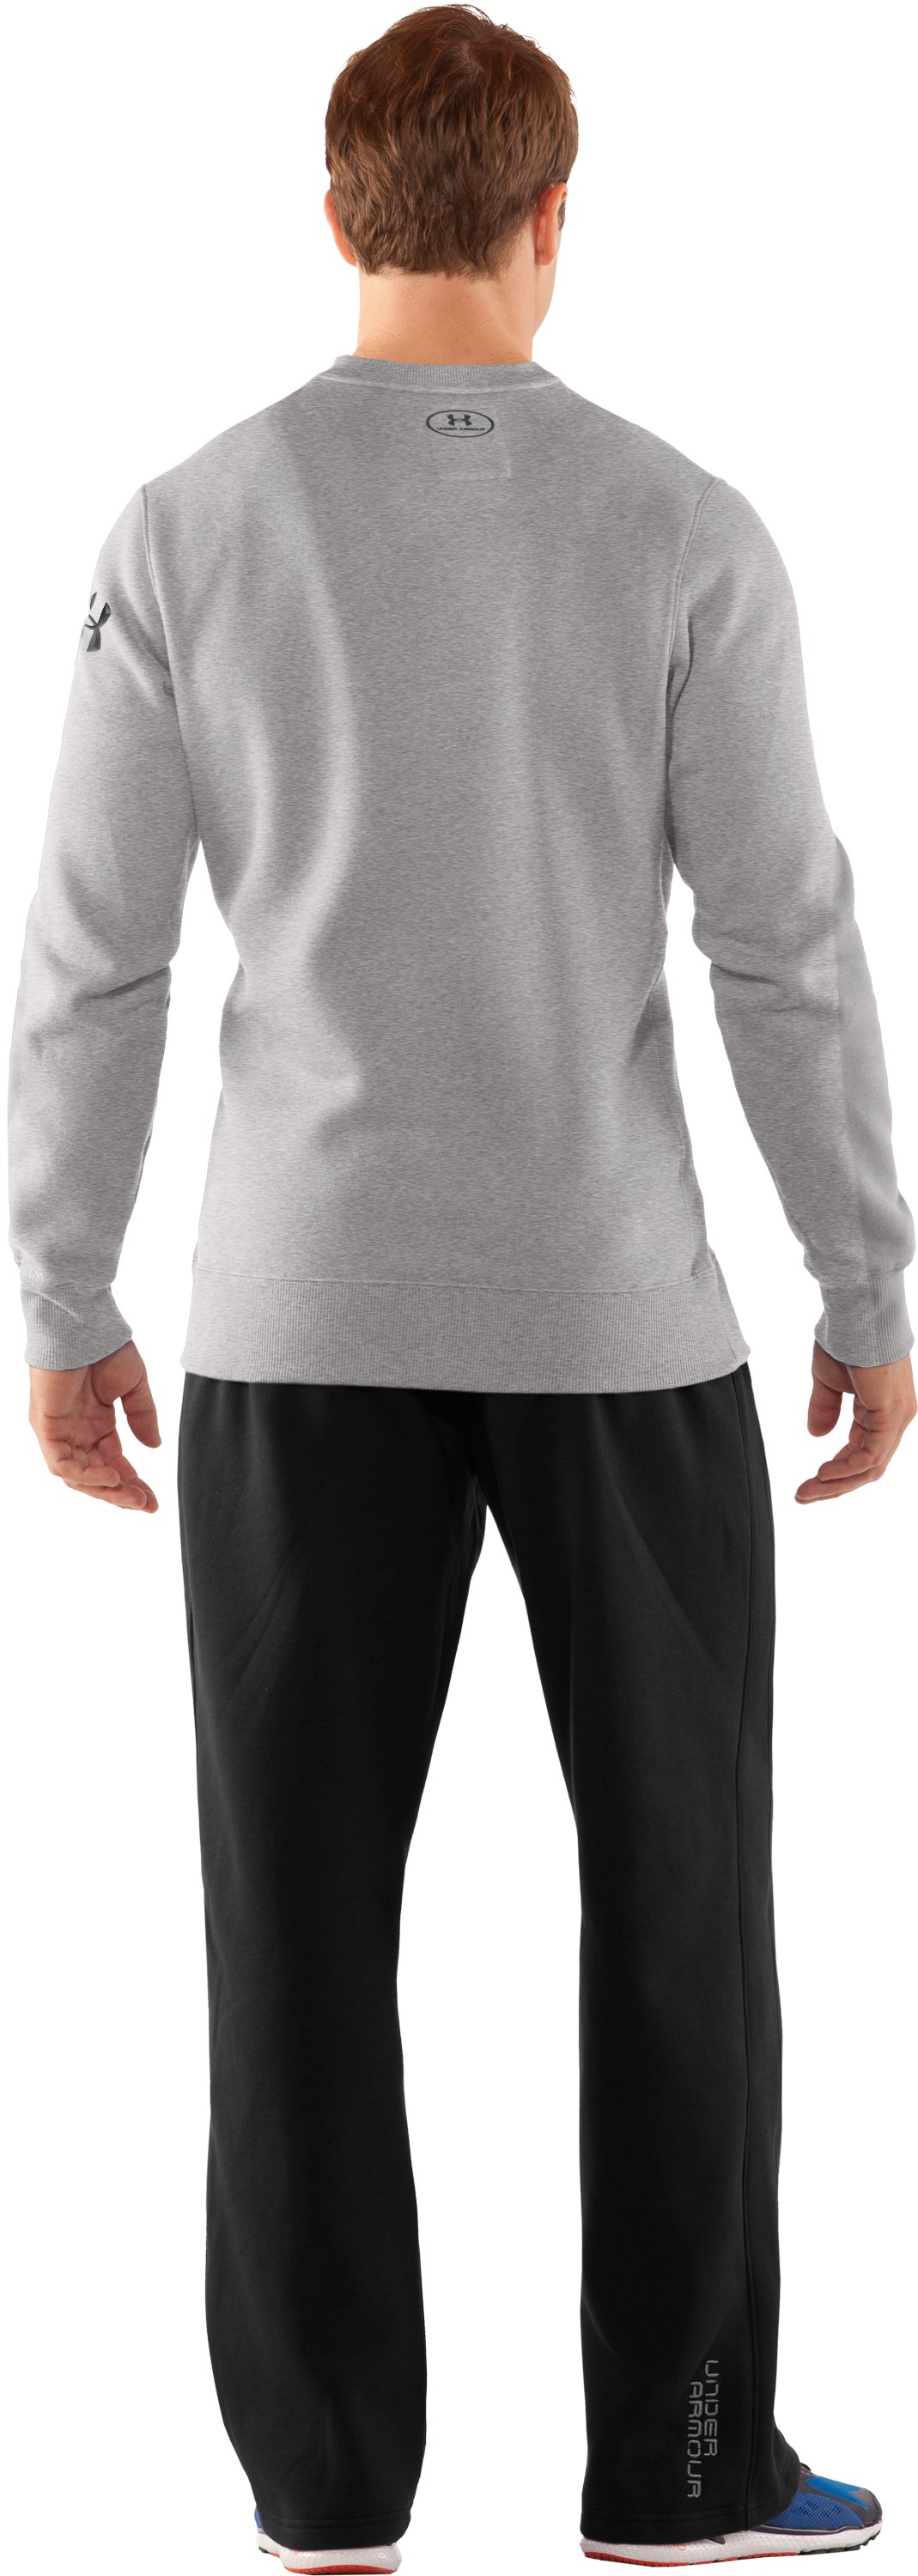 Men's Charged Cotton® Storm Crew, Silver Heather, Back